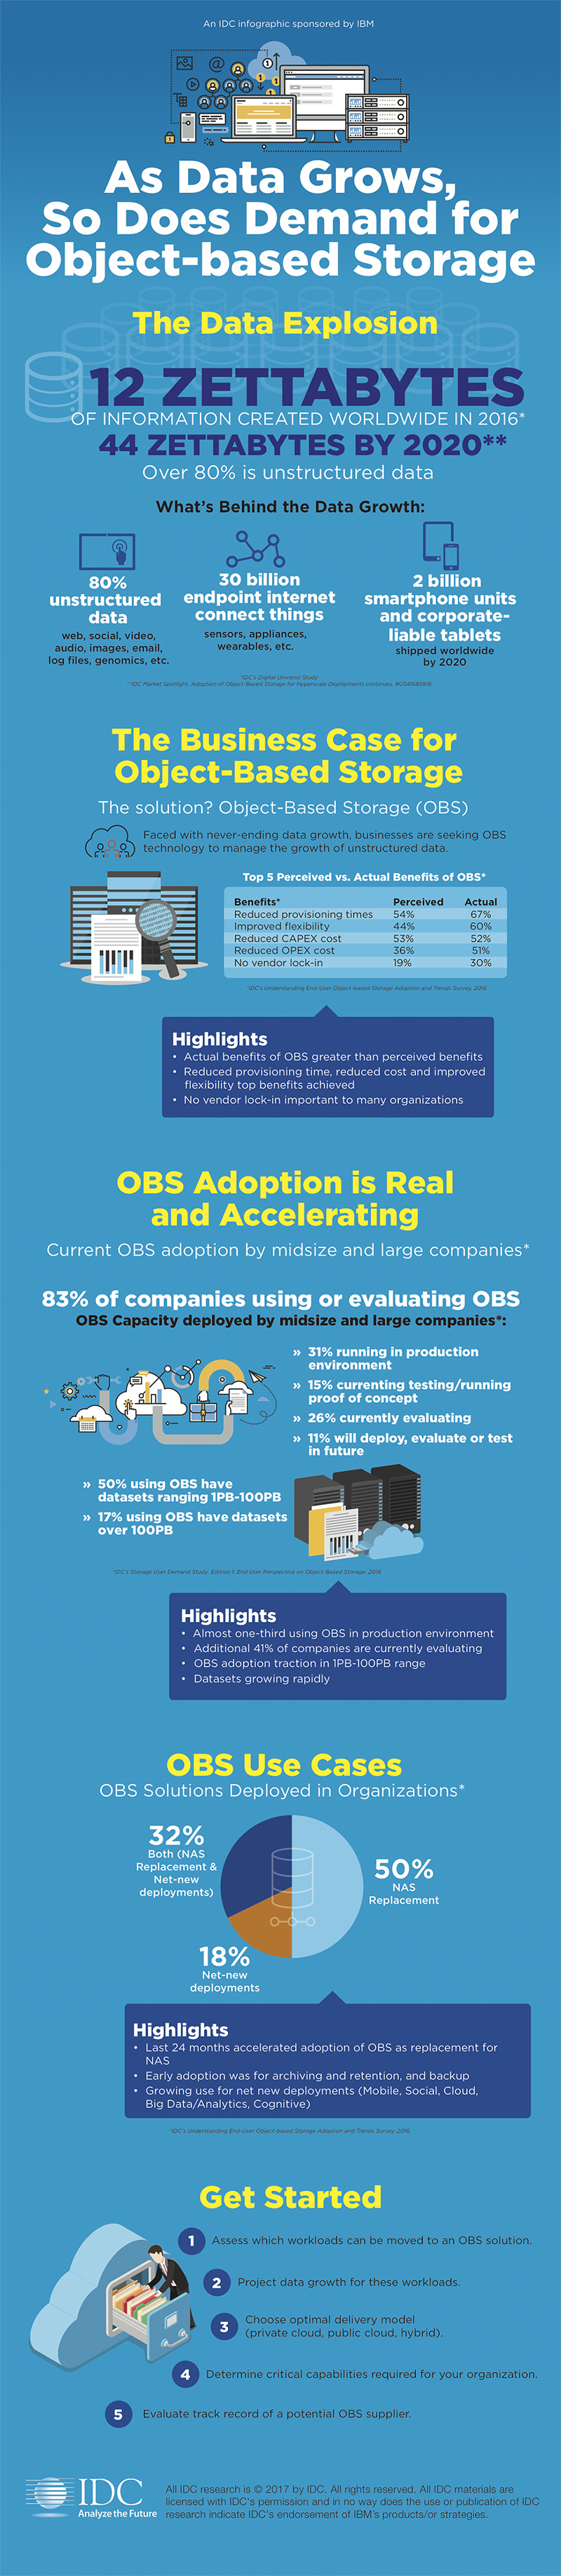 Infographic illustrating how the explosion of data is helping companies make a business case for object-based storage.